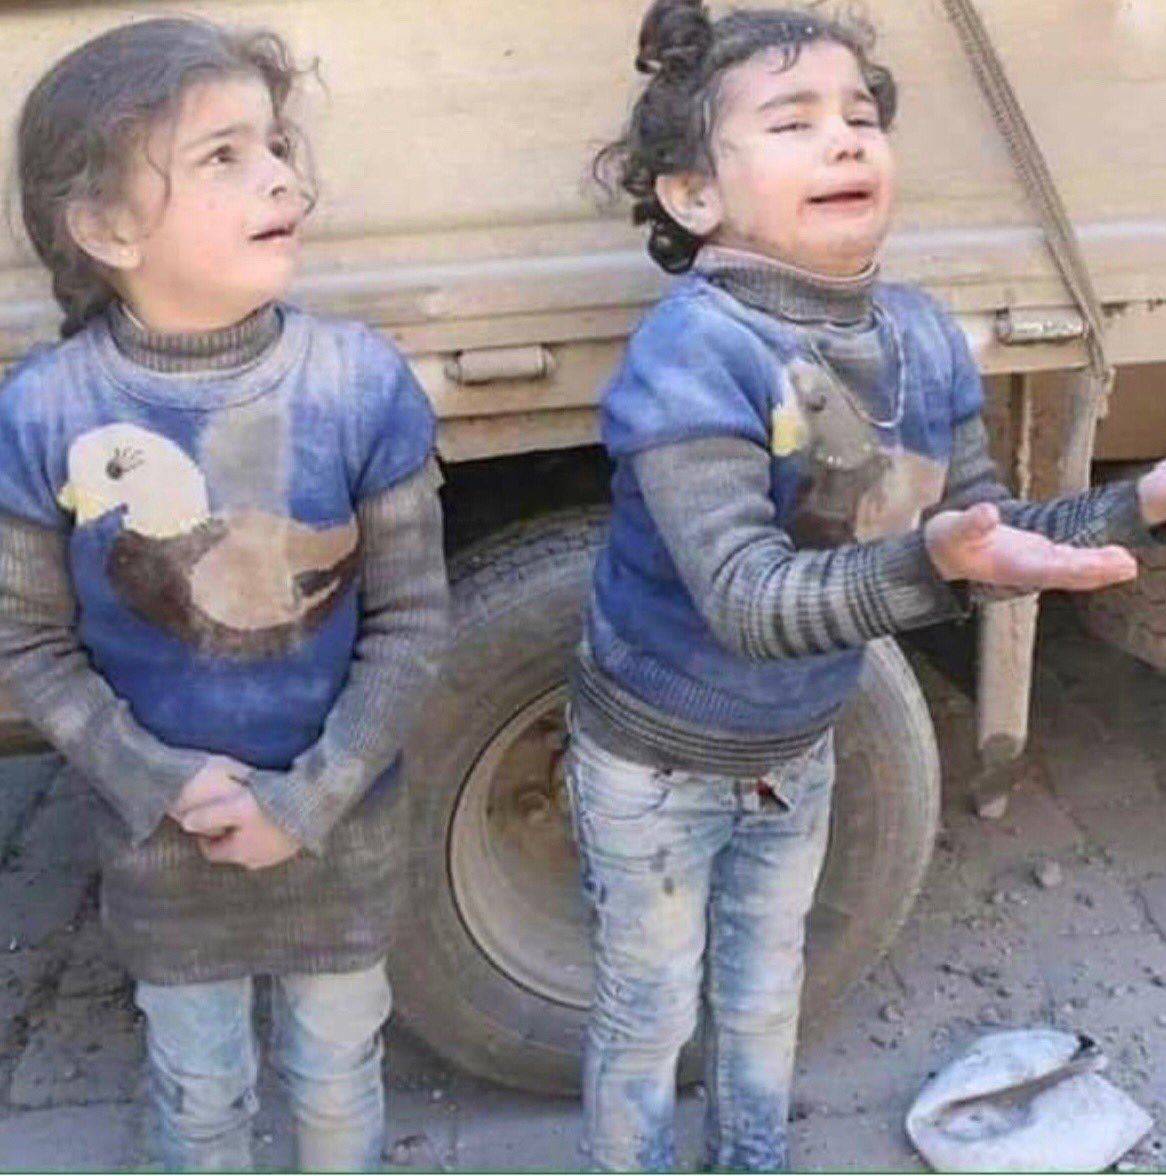 If this innocent children in Syria don't...